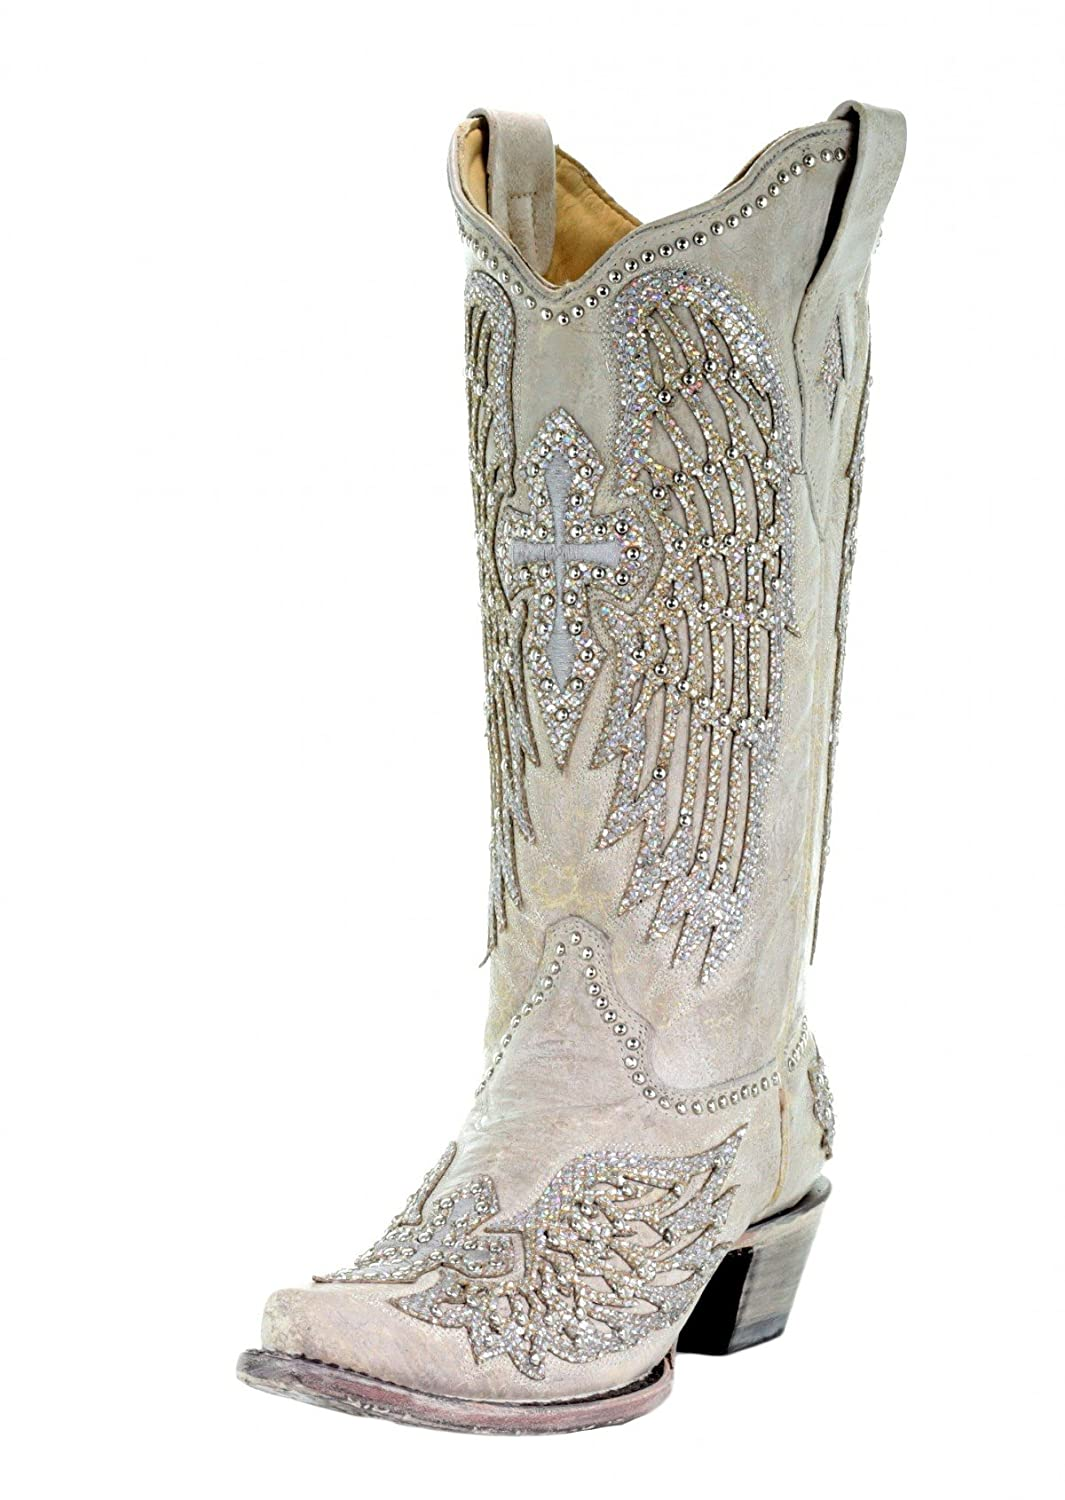 CORRAL A3571 White Cross and Wings Boots B07CP2WZR2 8.5 B(M) US